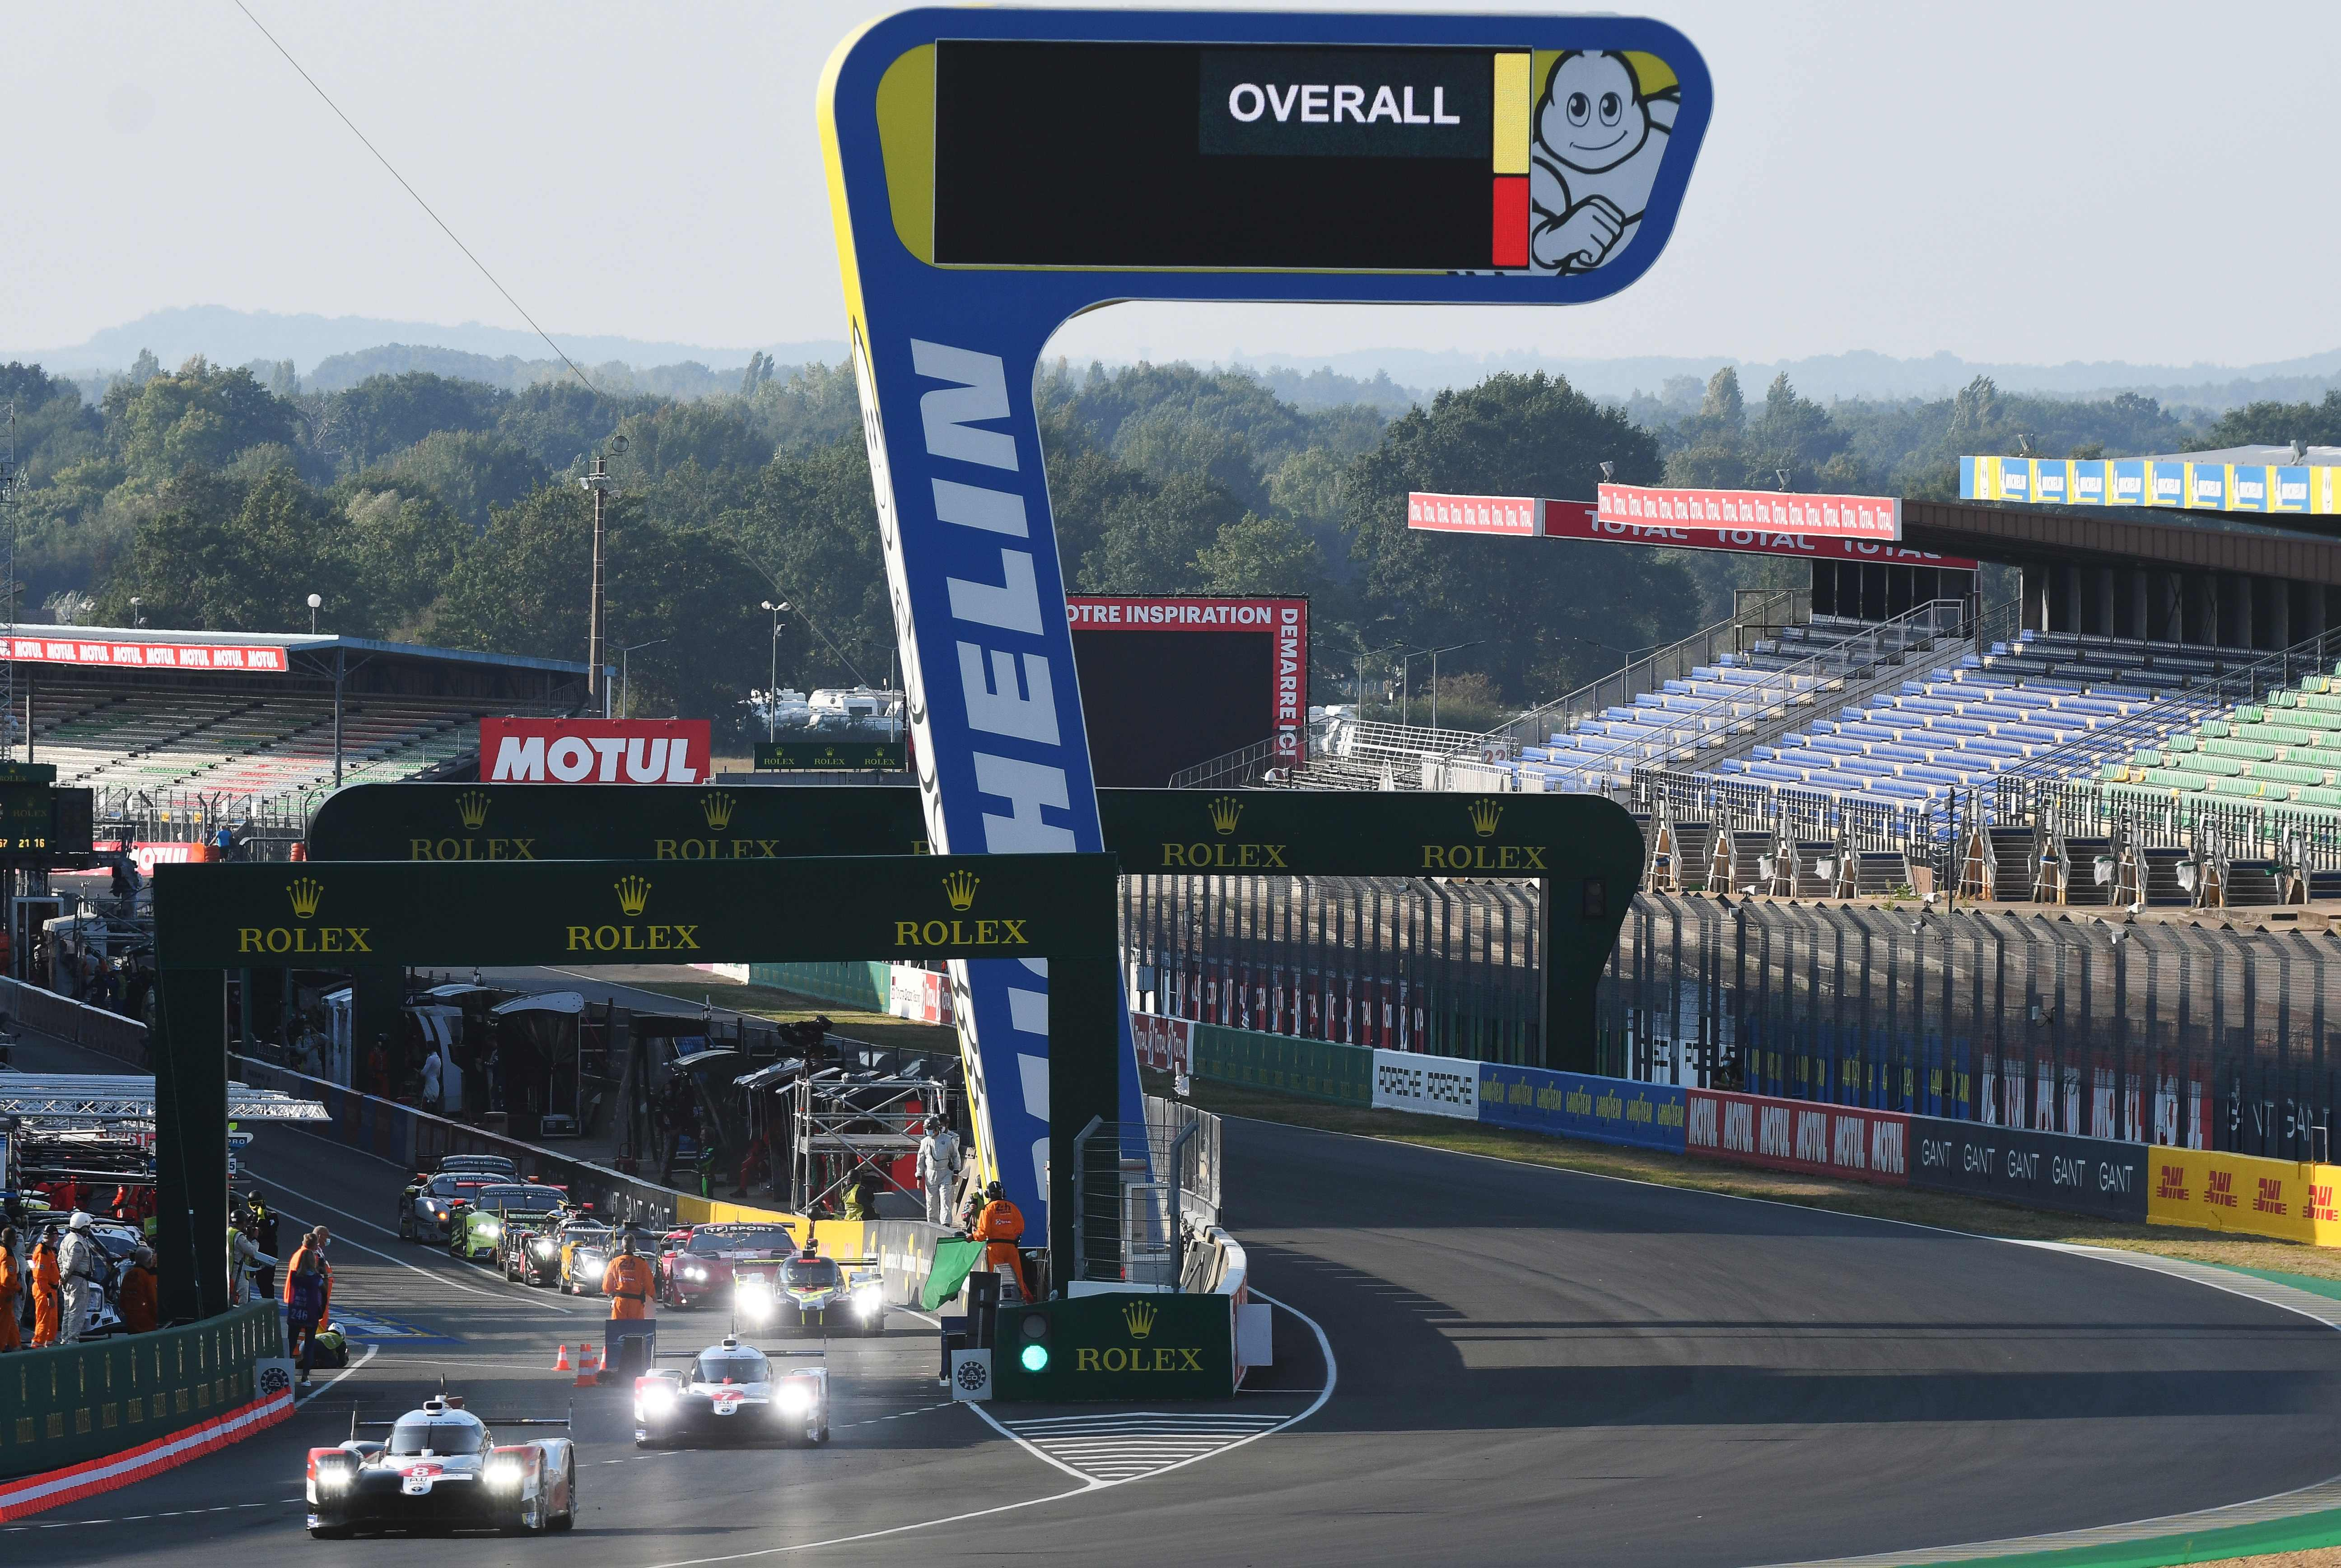 Le Mans 24 Hours Live Stream How To Watch Online And On Tv This Weekend Schedule Start Times And Entry List The Independent